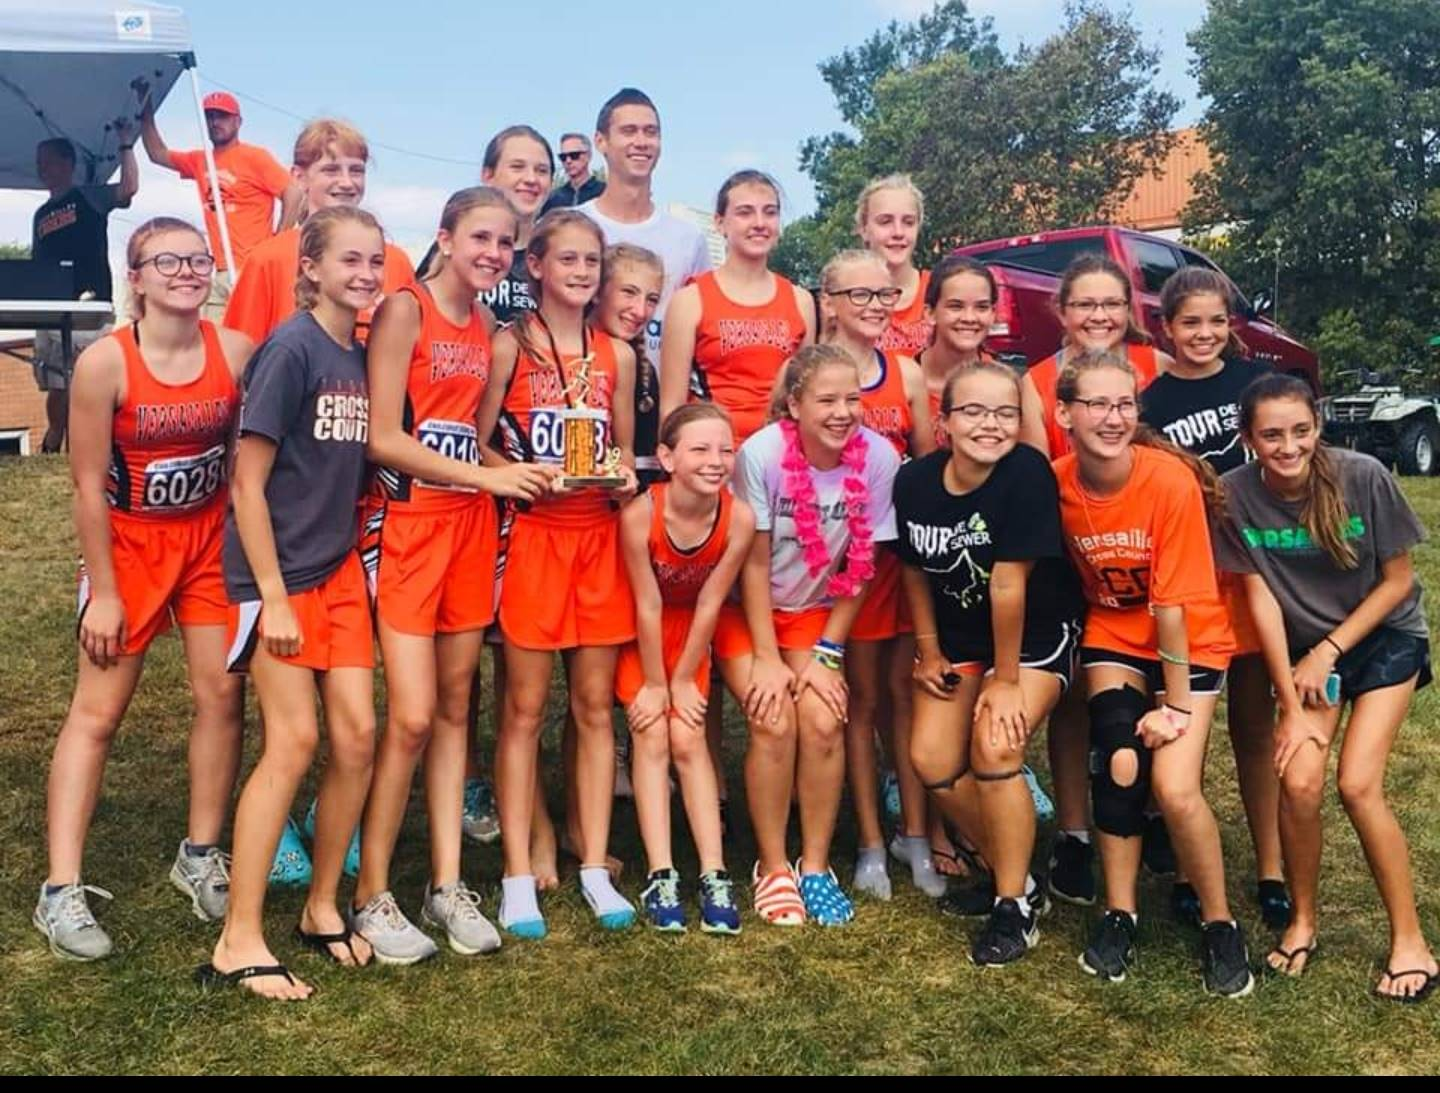 2nd place finish for jr. high girls cross country